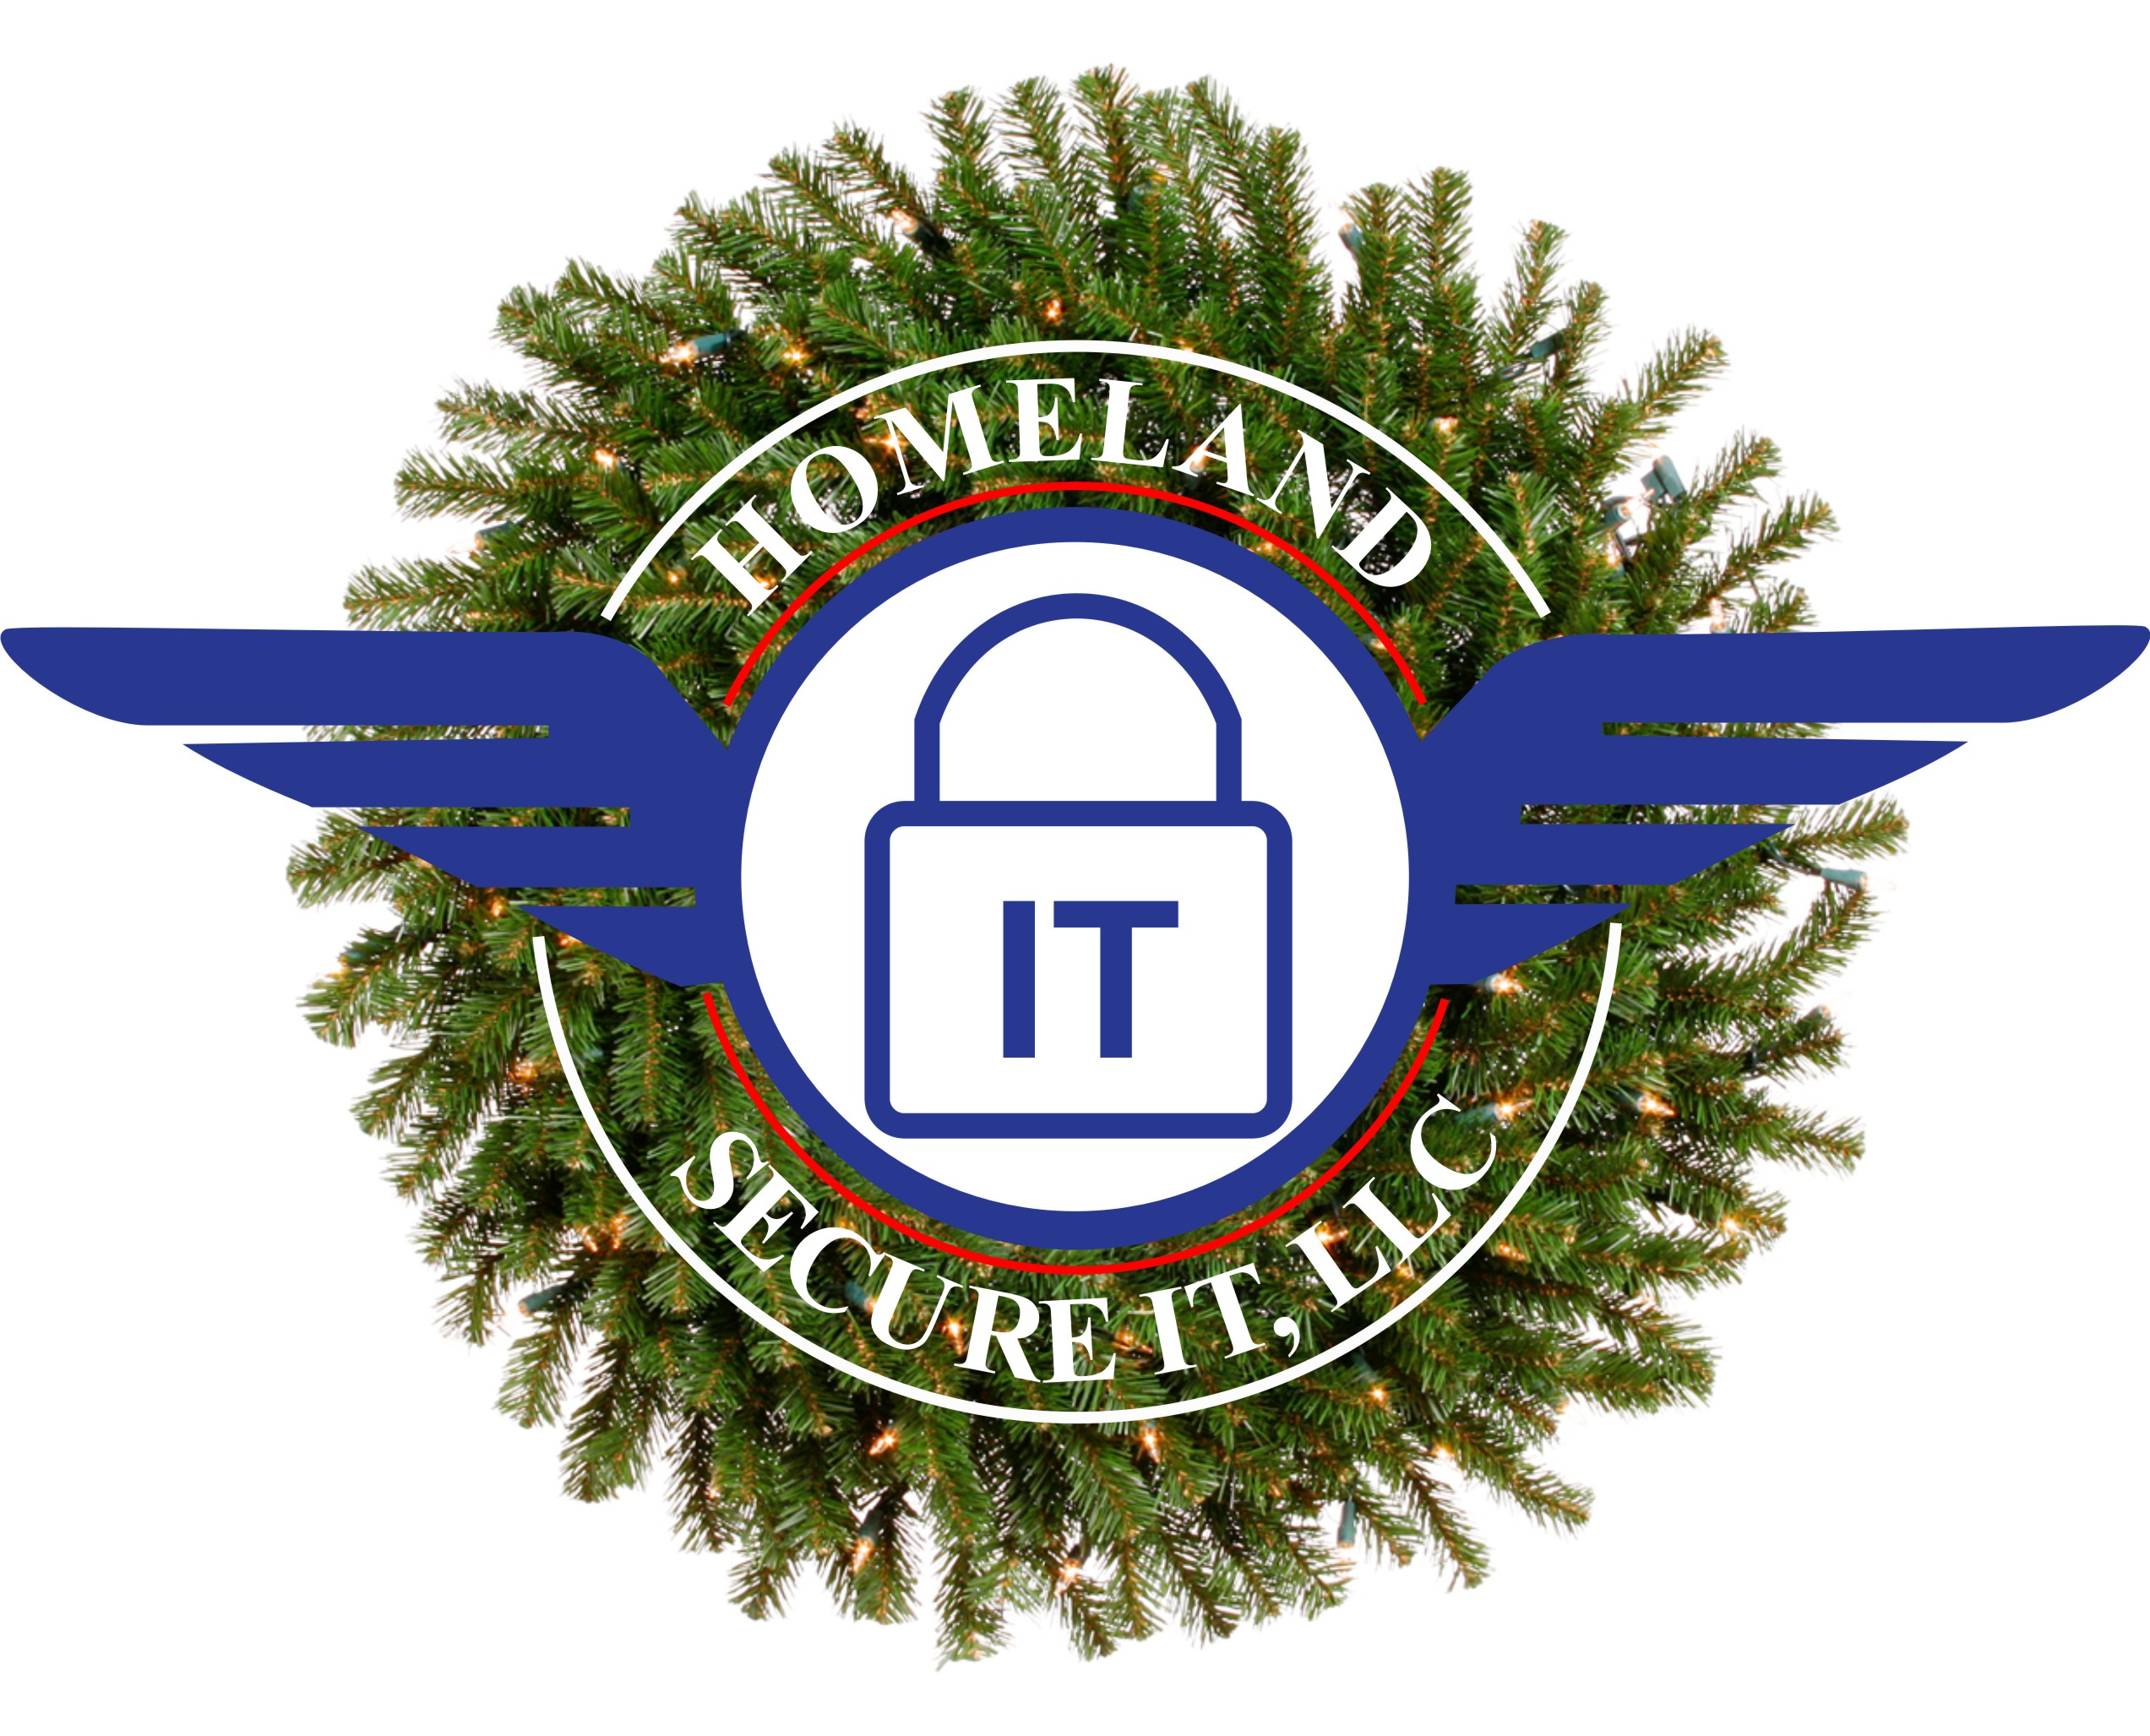 Merry Christmas from Homeland Secure IT